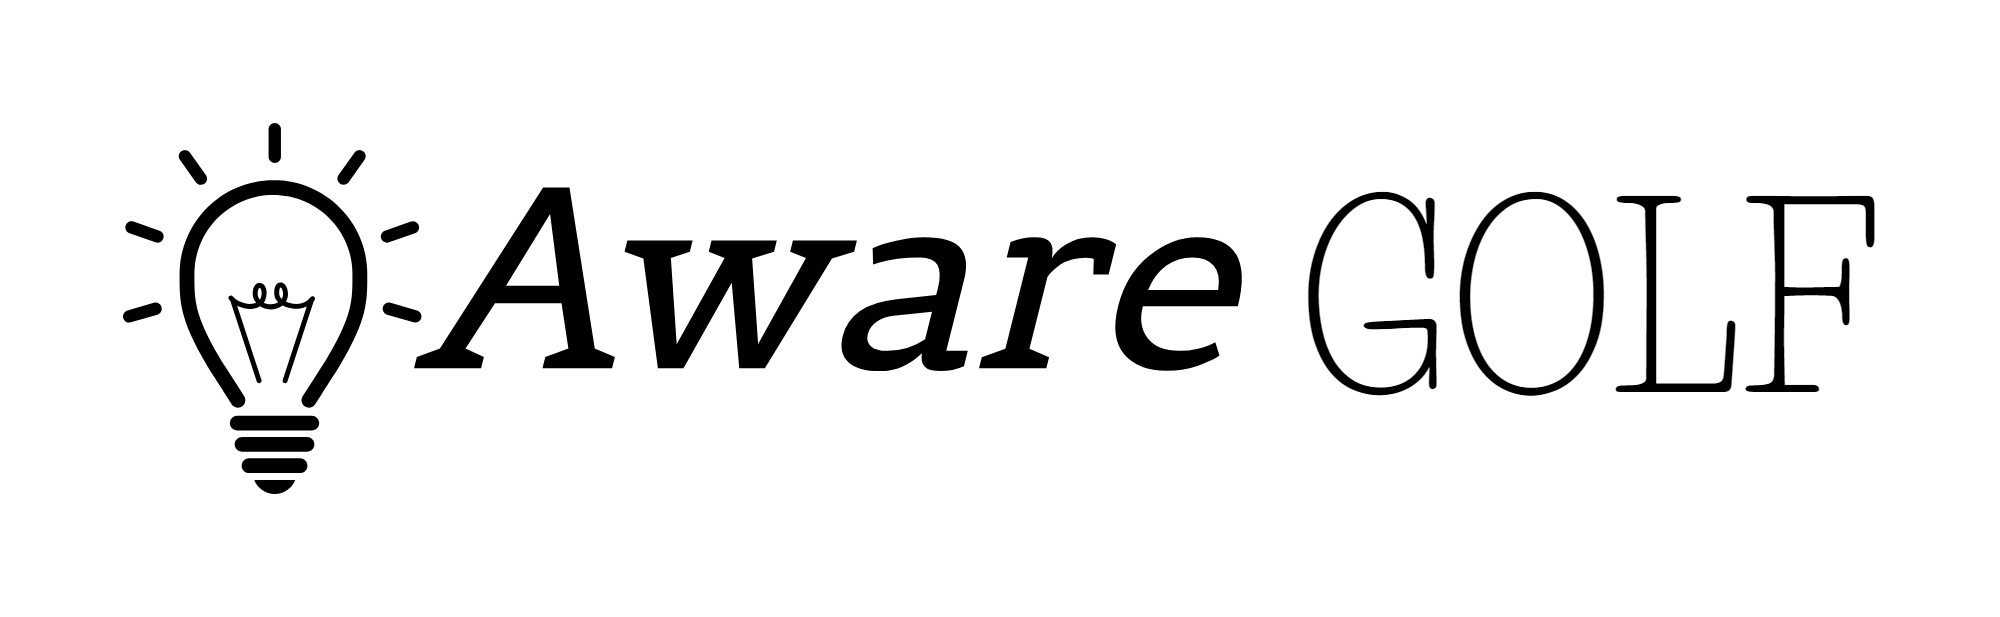 Aware        -logo-black.png